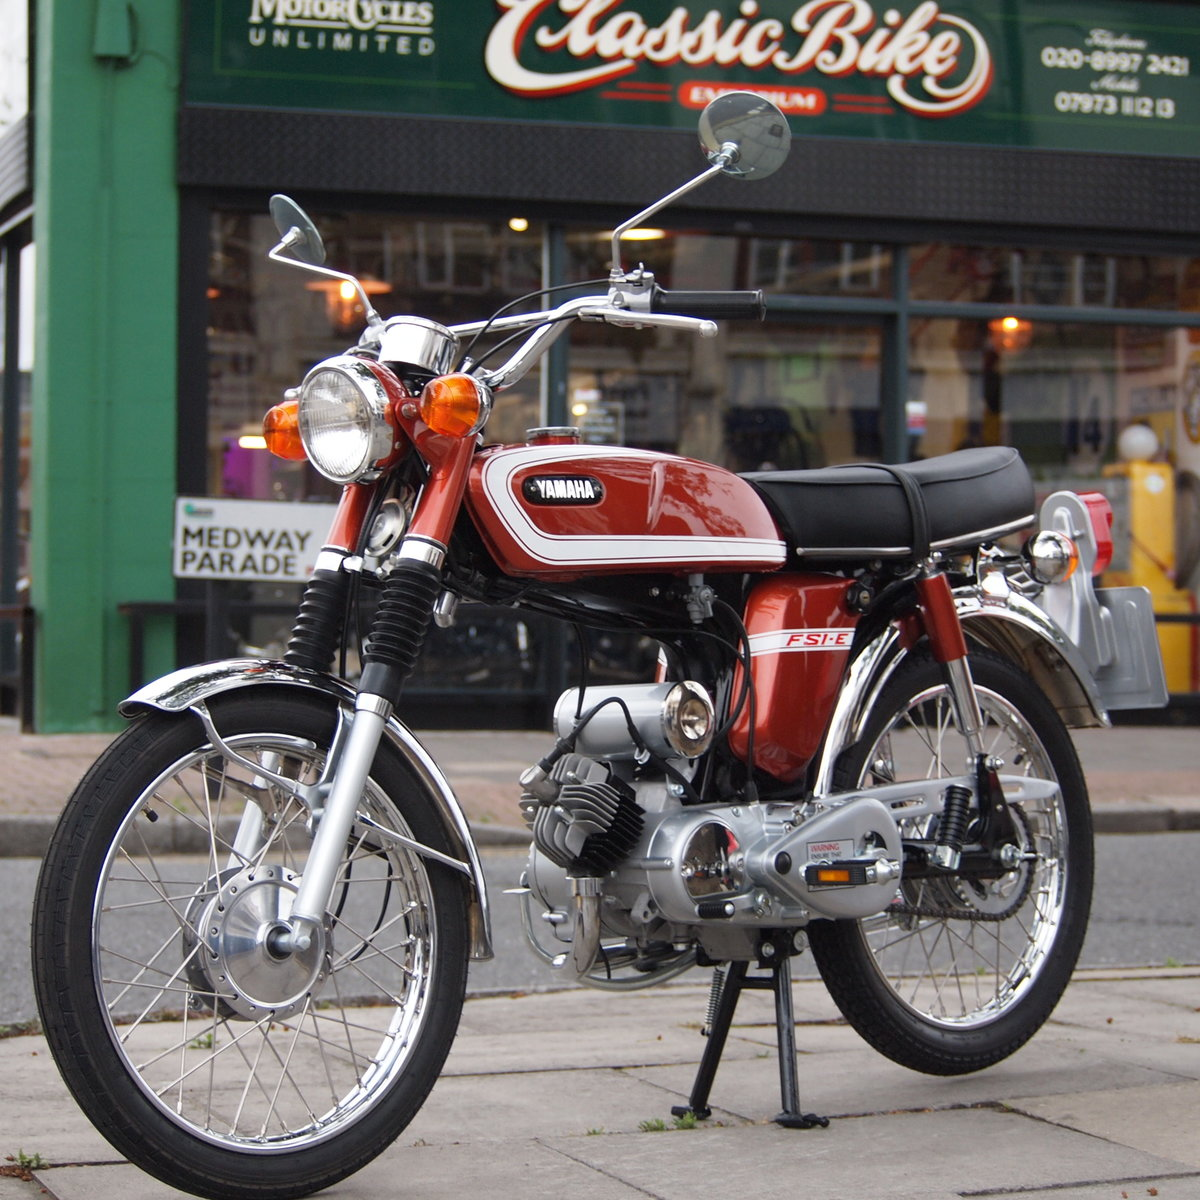 1975 Yamaha FS1E Genuine Rare UK Pedal Moped, Like New. For Sale (picture 4 of 6)